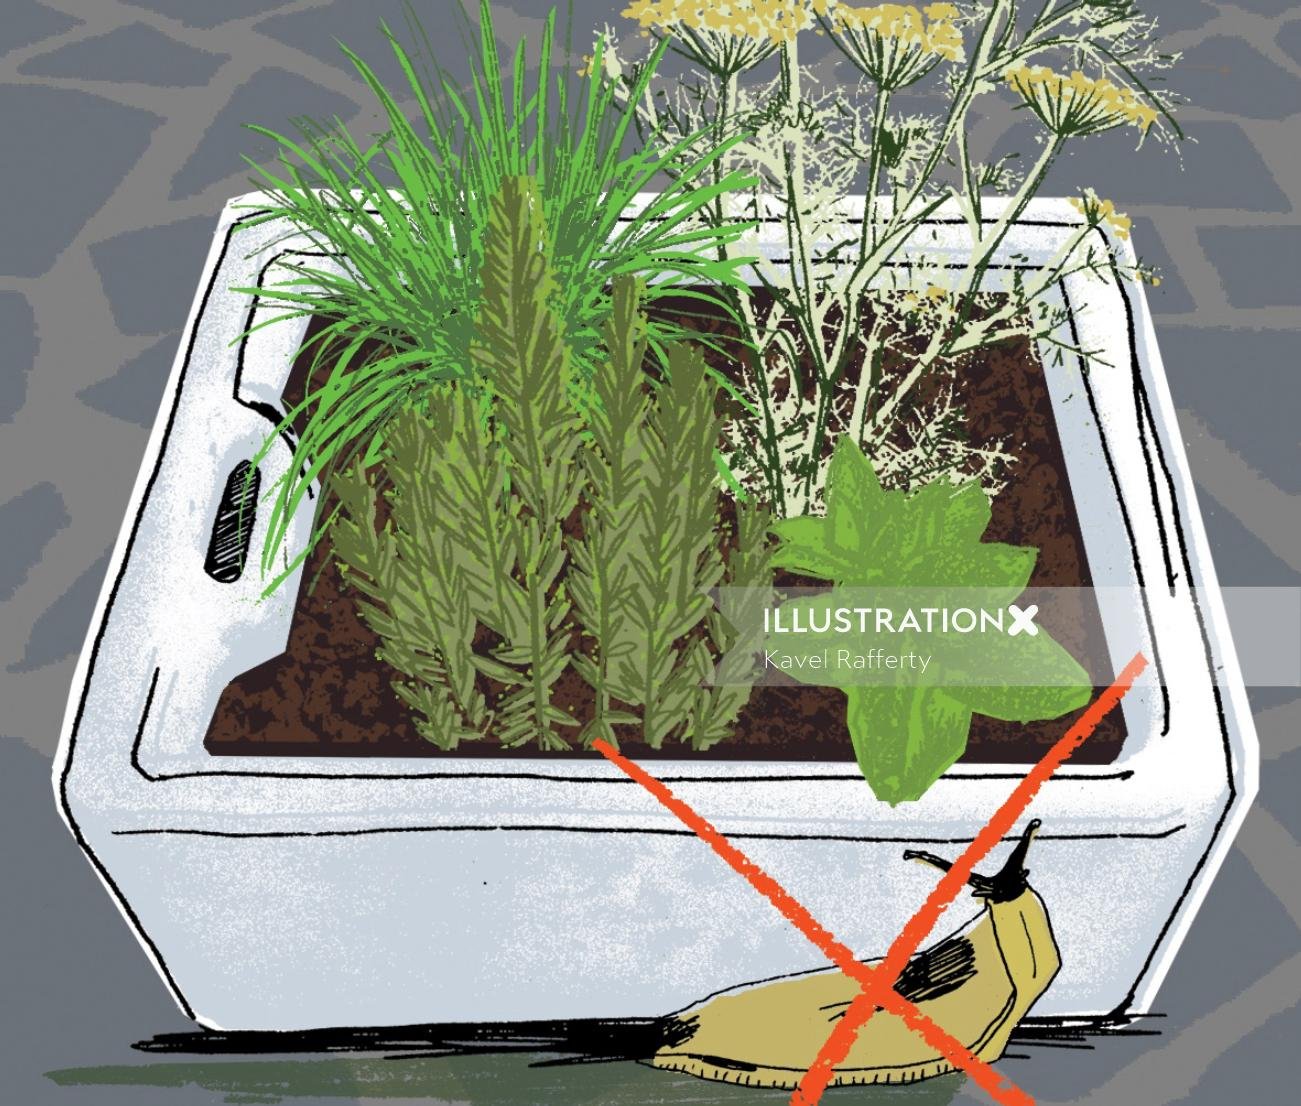 An illustration of plant in pot